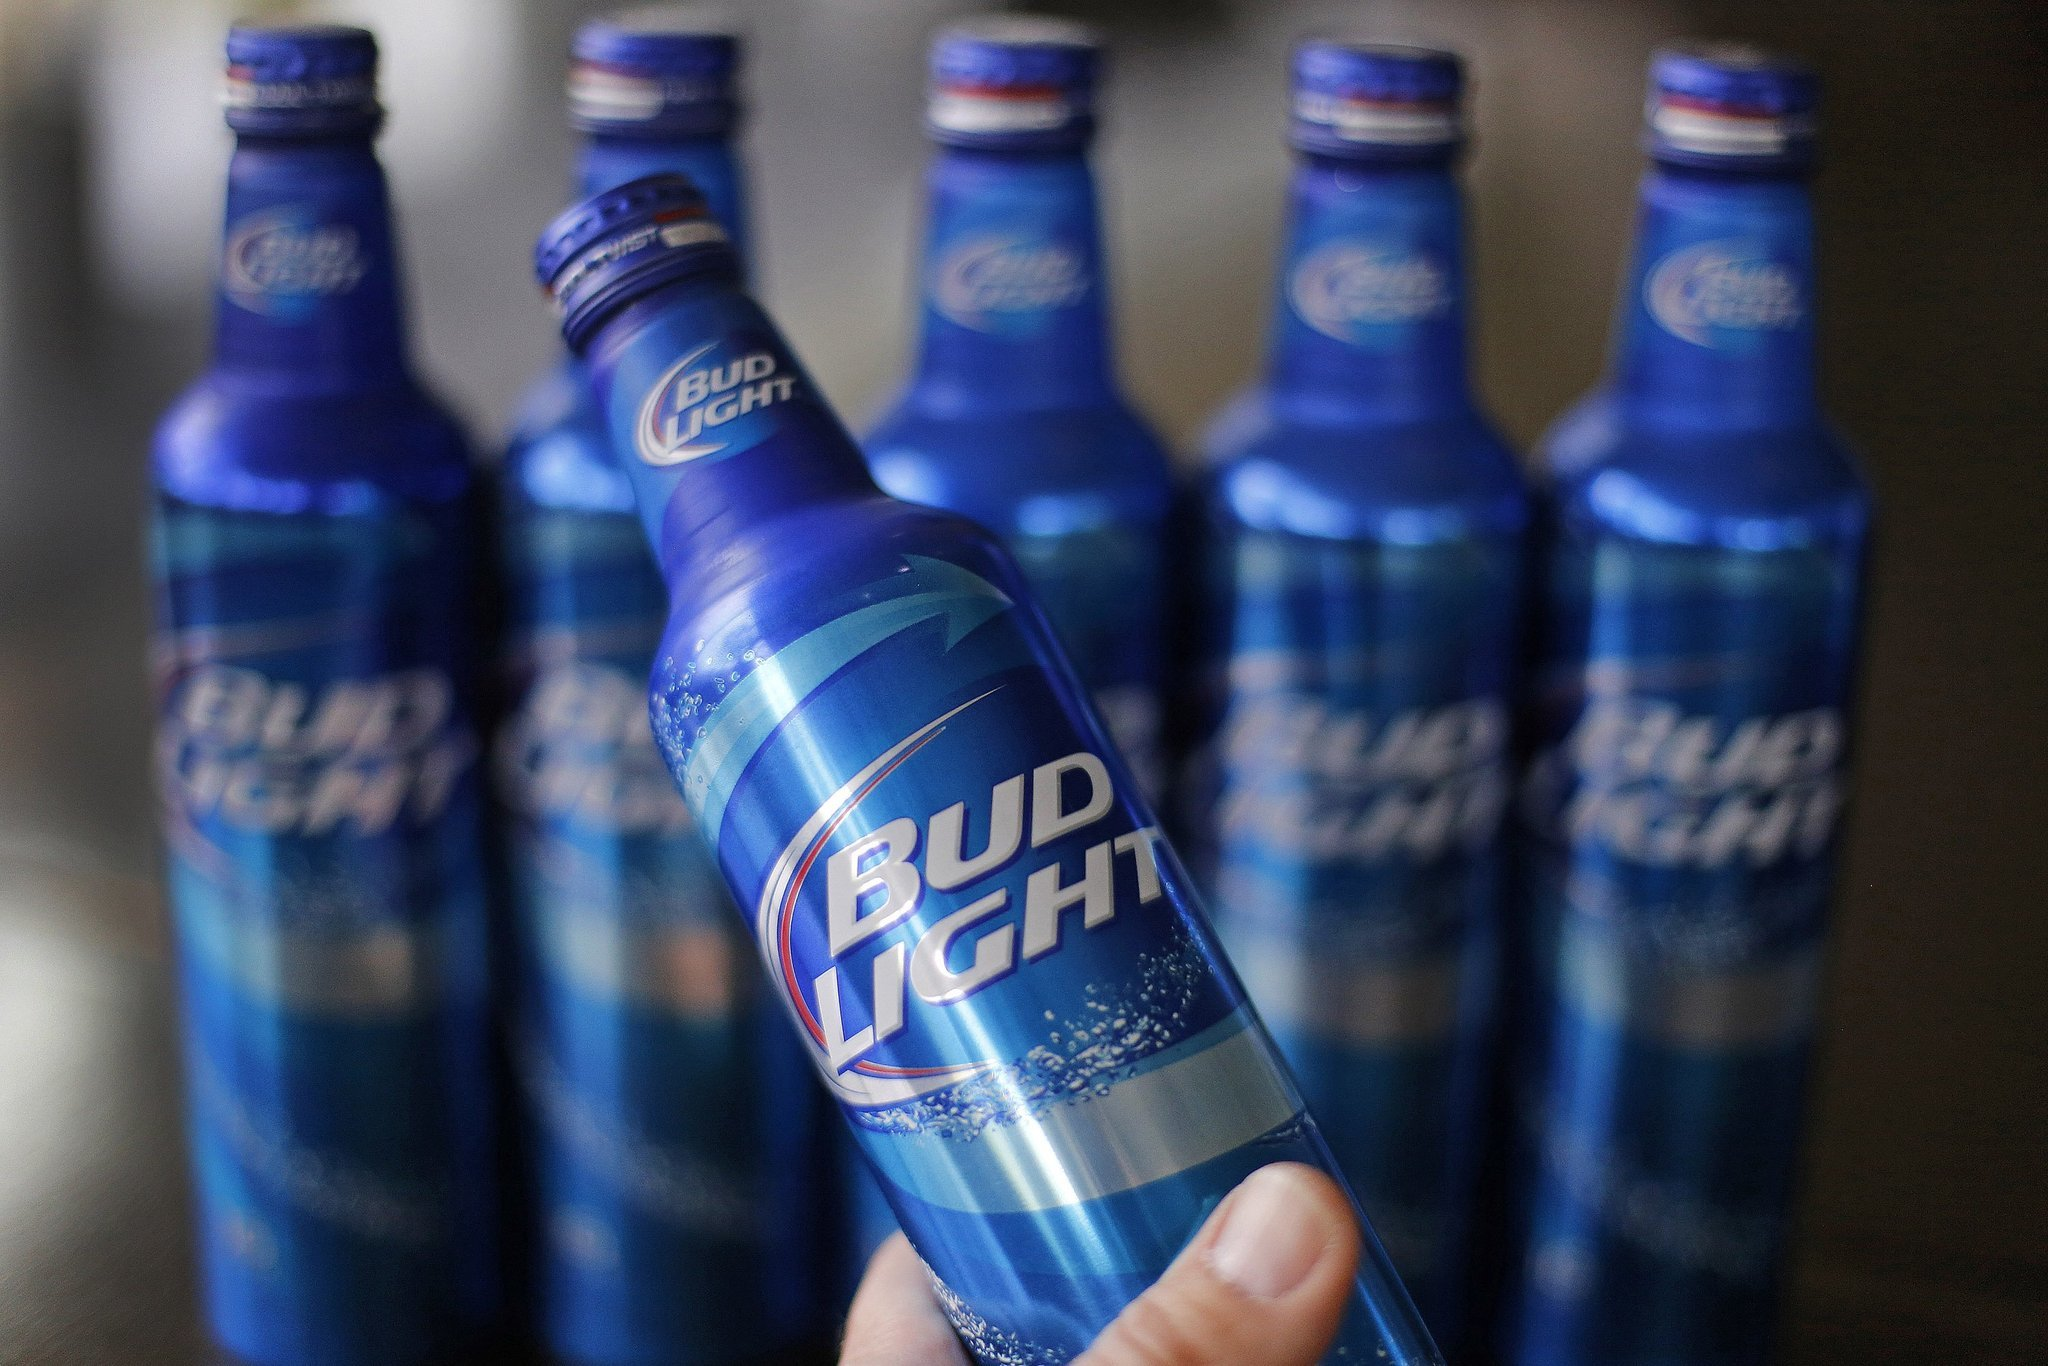 Bud Light 39 S 39 Up For Whatever 39 Slogan Hits A Target But Is